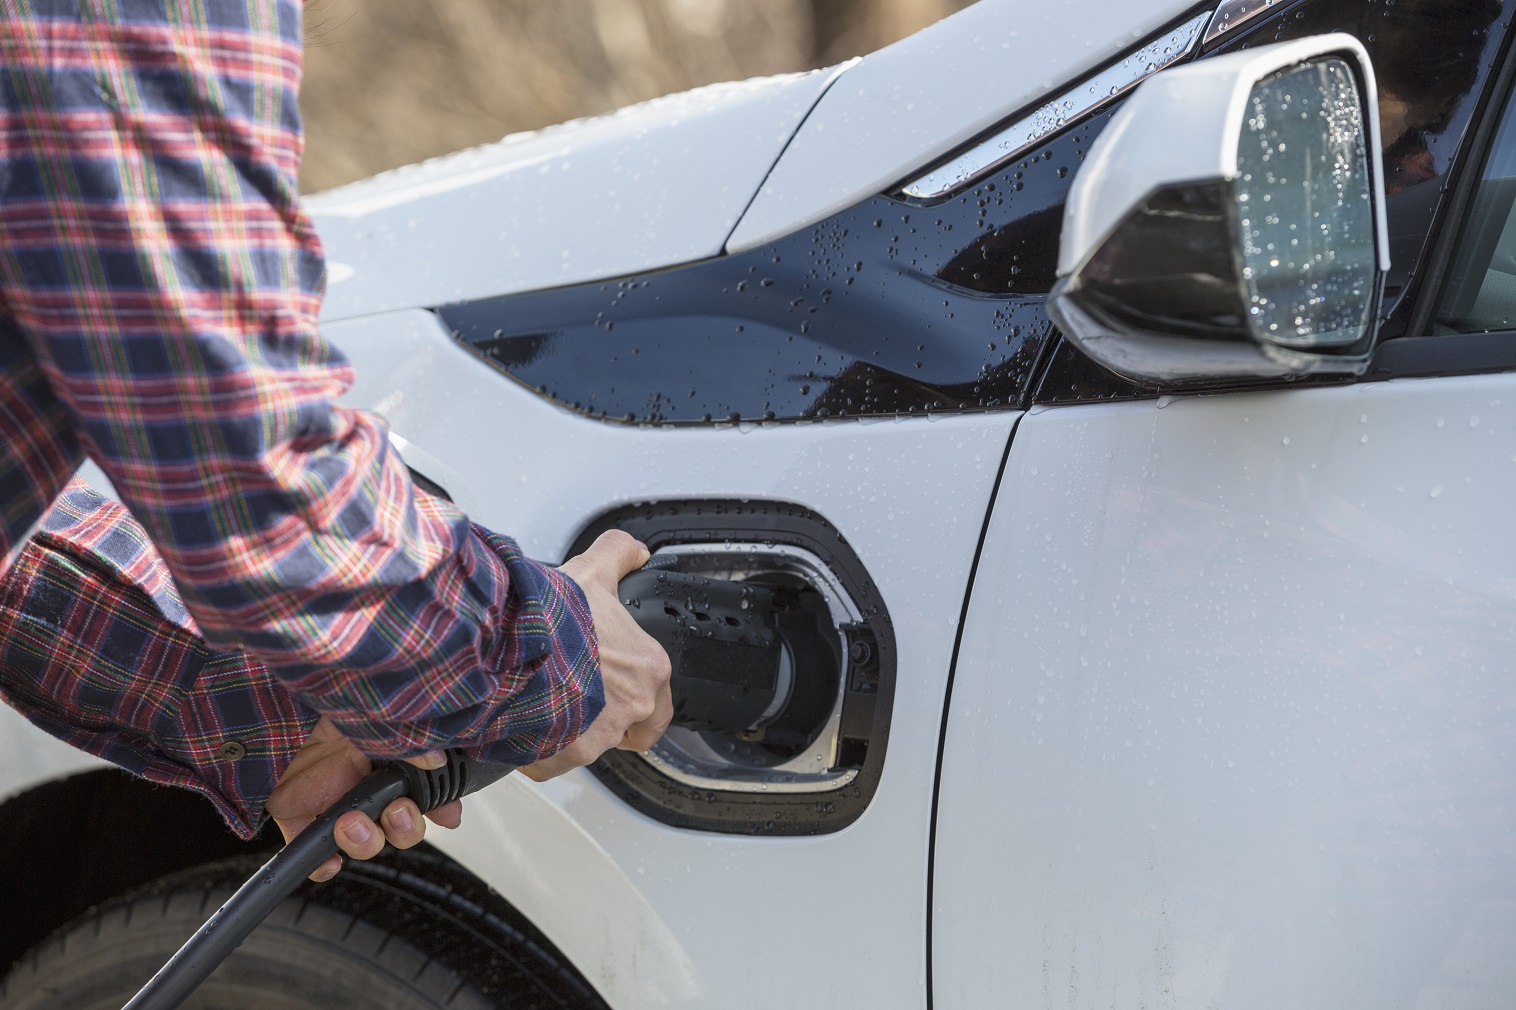 Costa Rica steps up energy transition with EV purchase